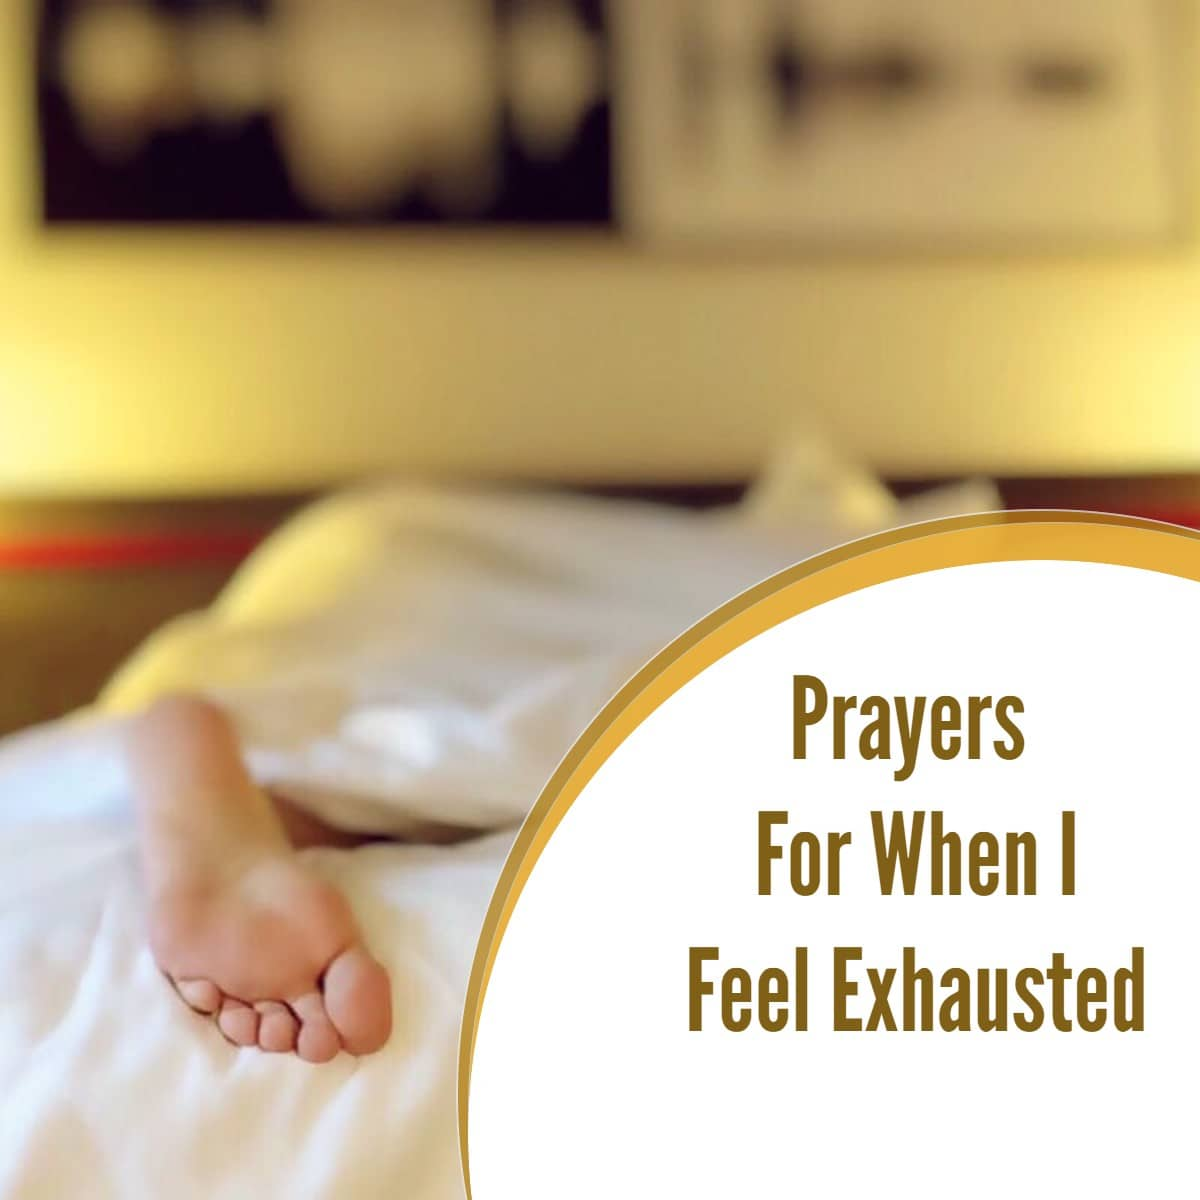 Prayers For When I Feel Exhausted